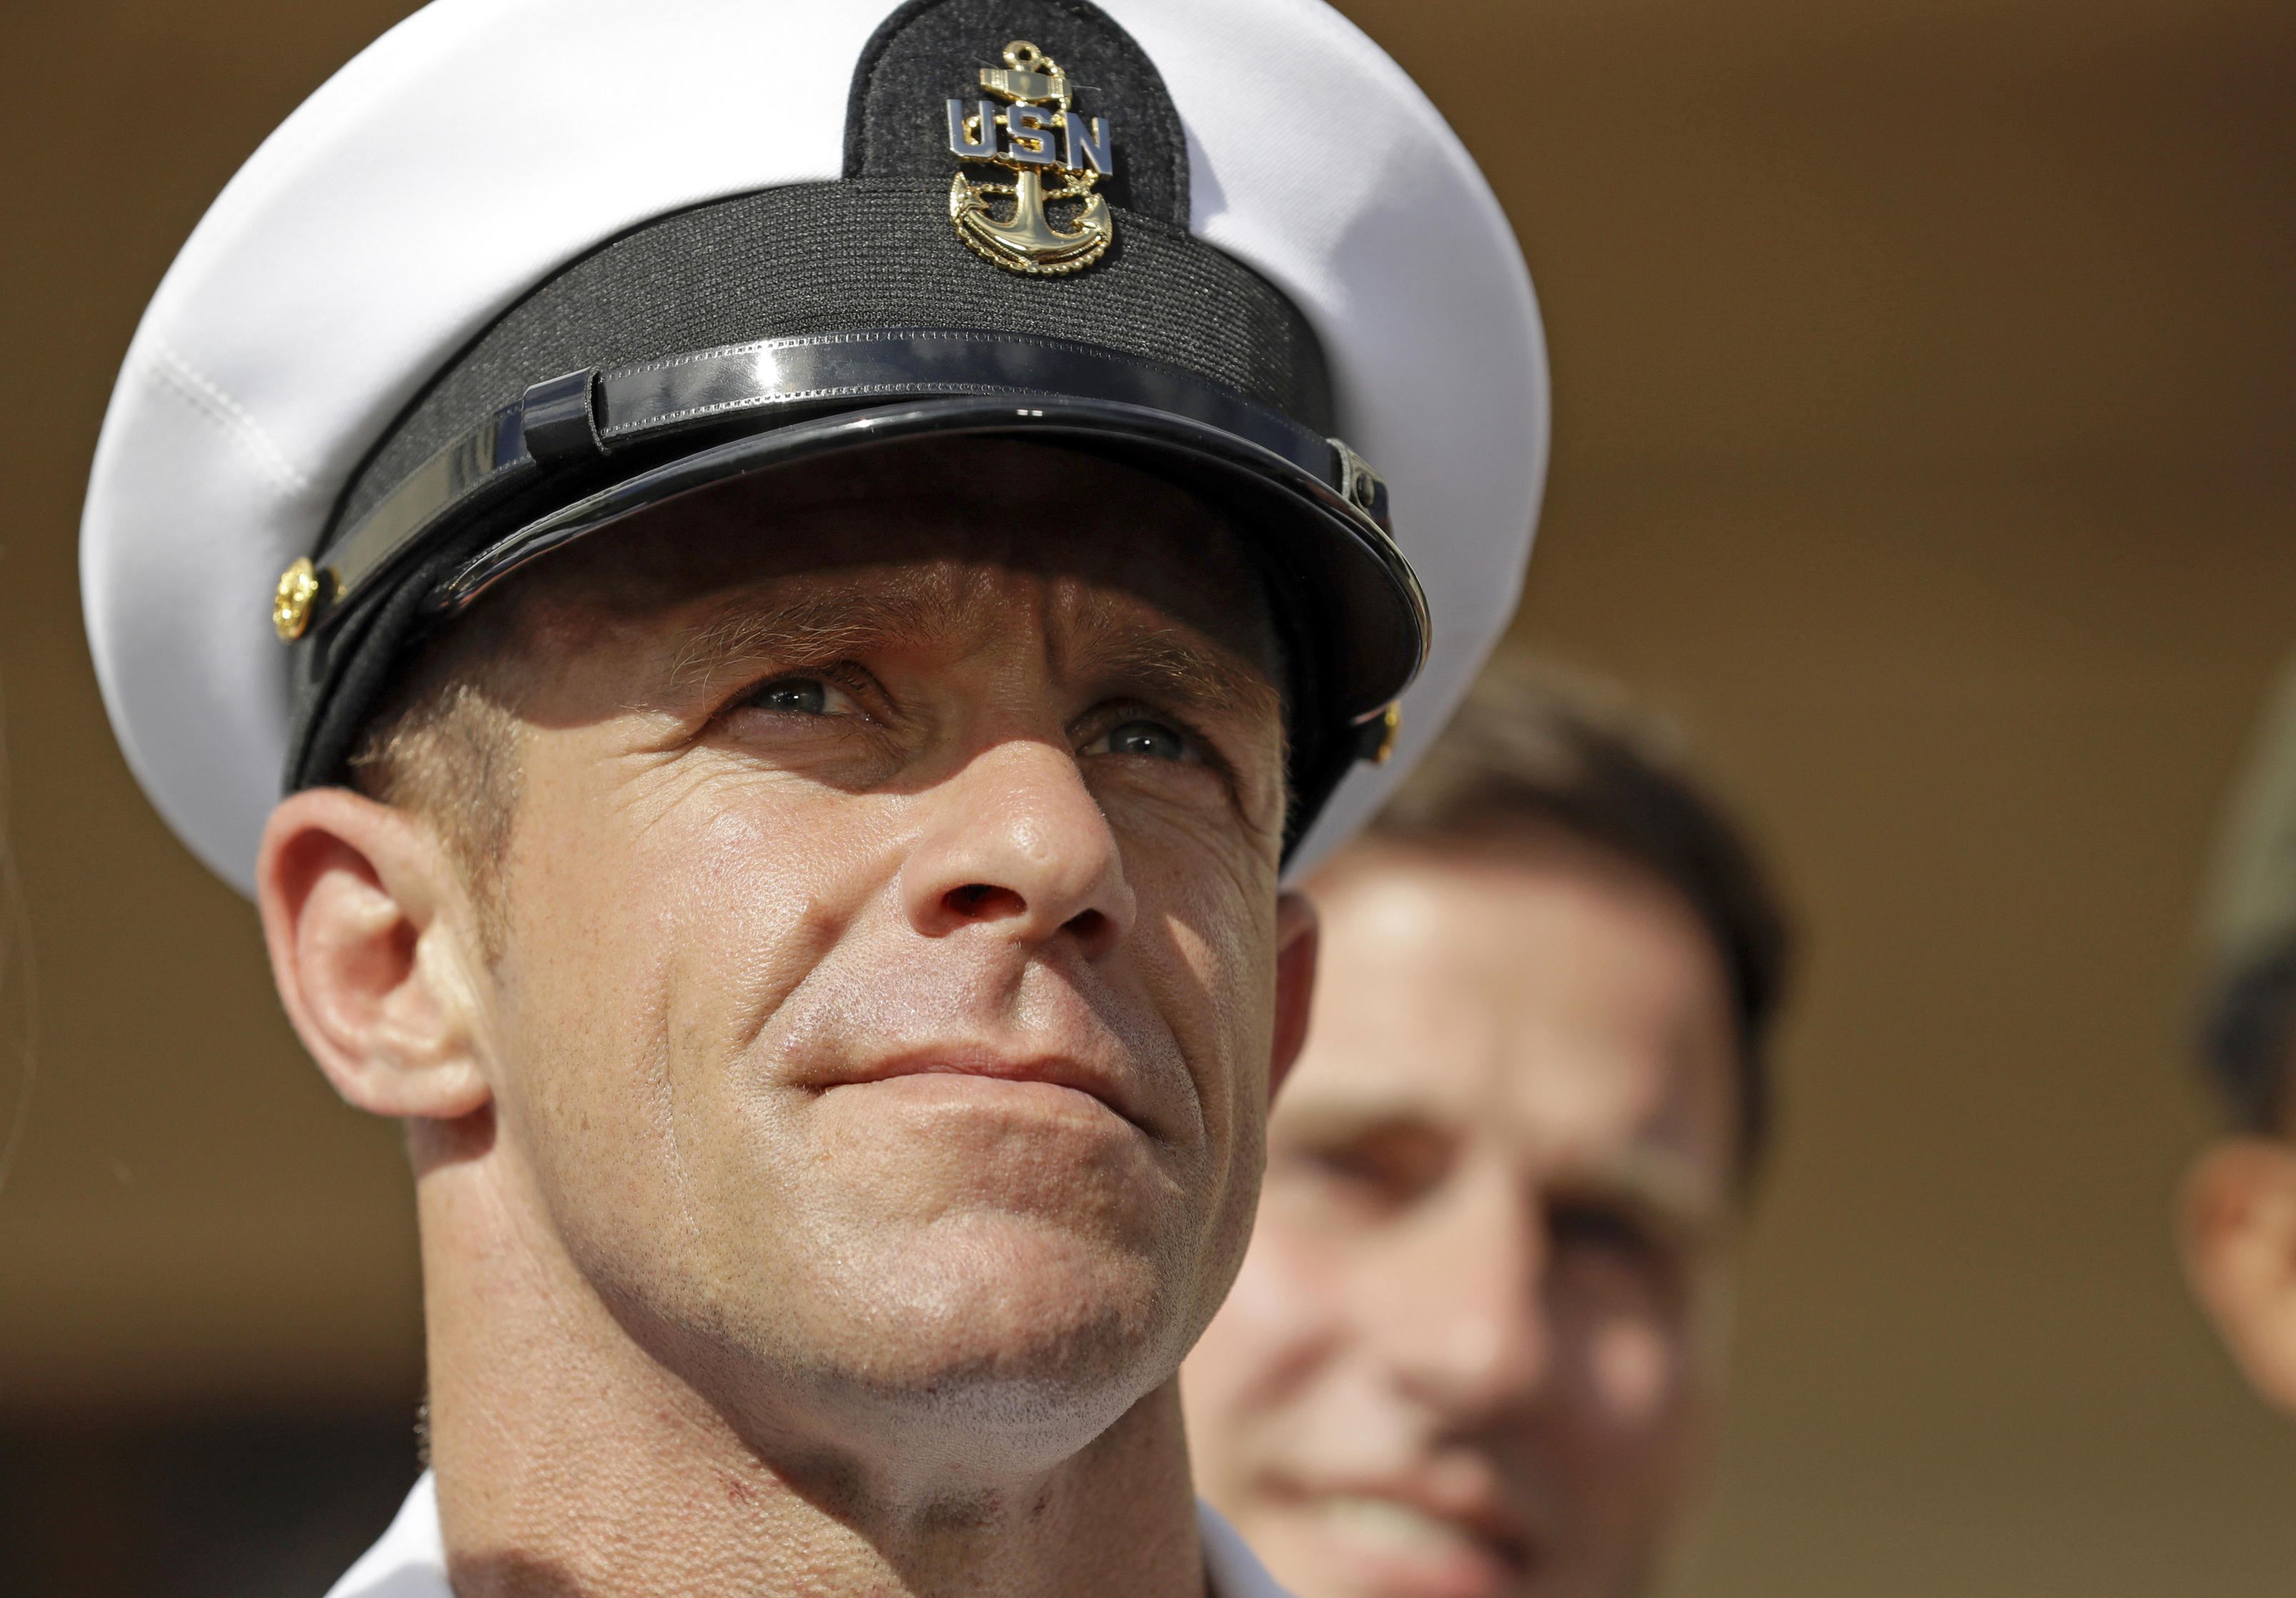 In this Tuesday, July 2, 2019, file photo, Navy Special Operations Chief Edward Gallagher leaves a military court on Naval Base San Diego. The attorney for Gallagher, convicted of posing with a dead captive in Iraq, says the Navy is trying to remove the special operations chief from the elite fighting force in retaliation for President Donald Trump restoring his rank. Defense attorney Timothy Parlatore said the Navy is holding a review board proceeding to remove Edward Gallagher's Trident pin and summoned him to meet with the SEAL leadership on Wednesday, Nov. 20, 2019.